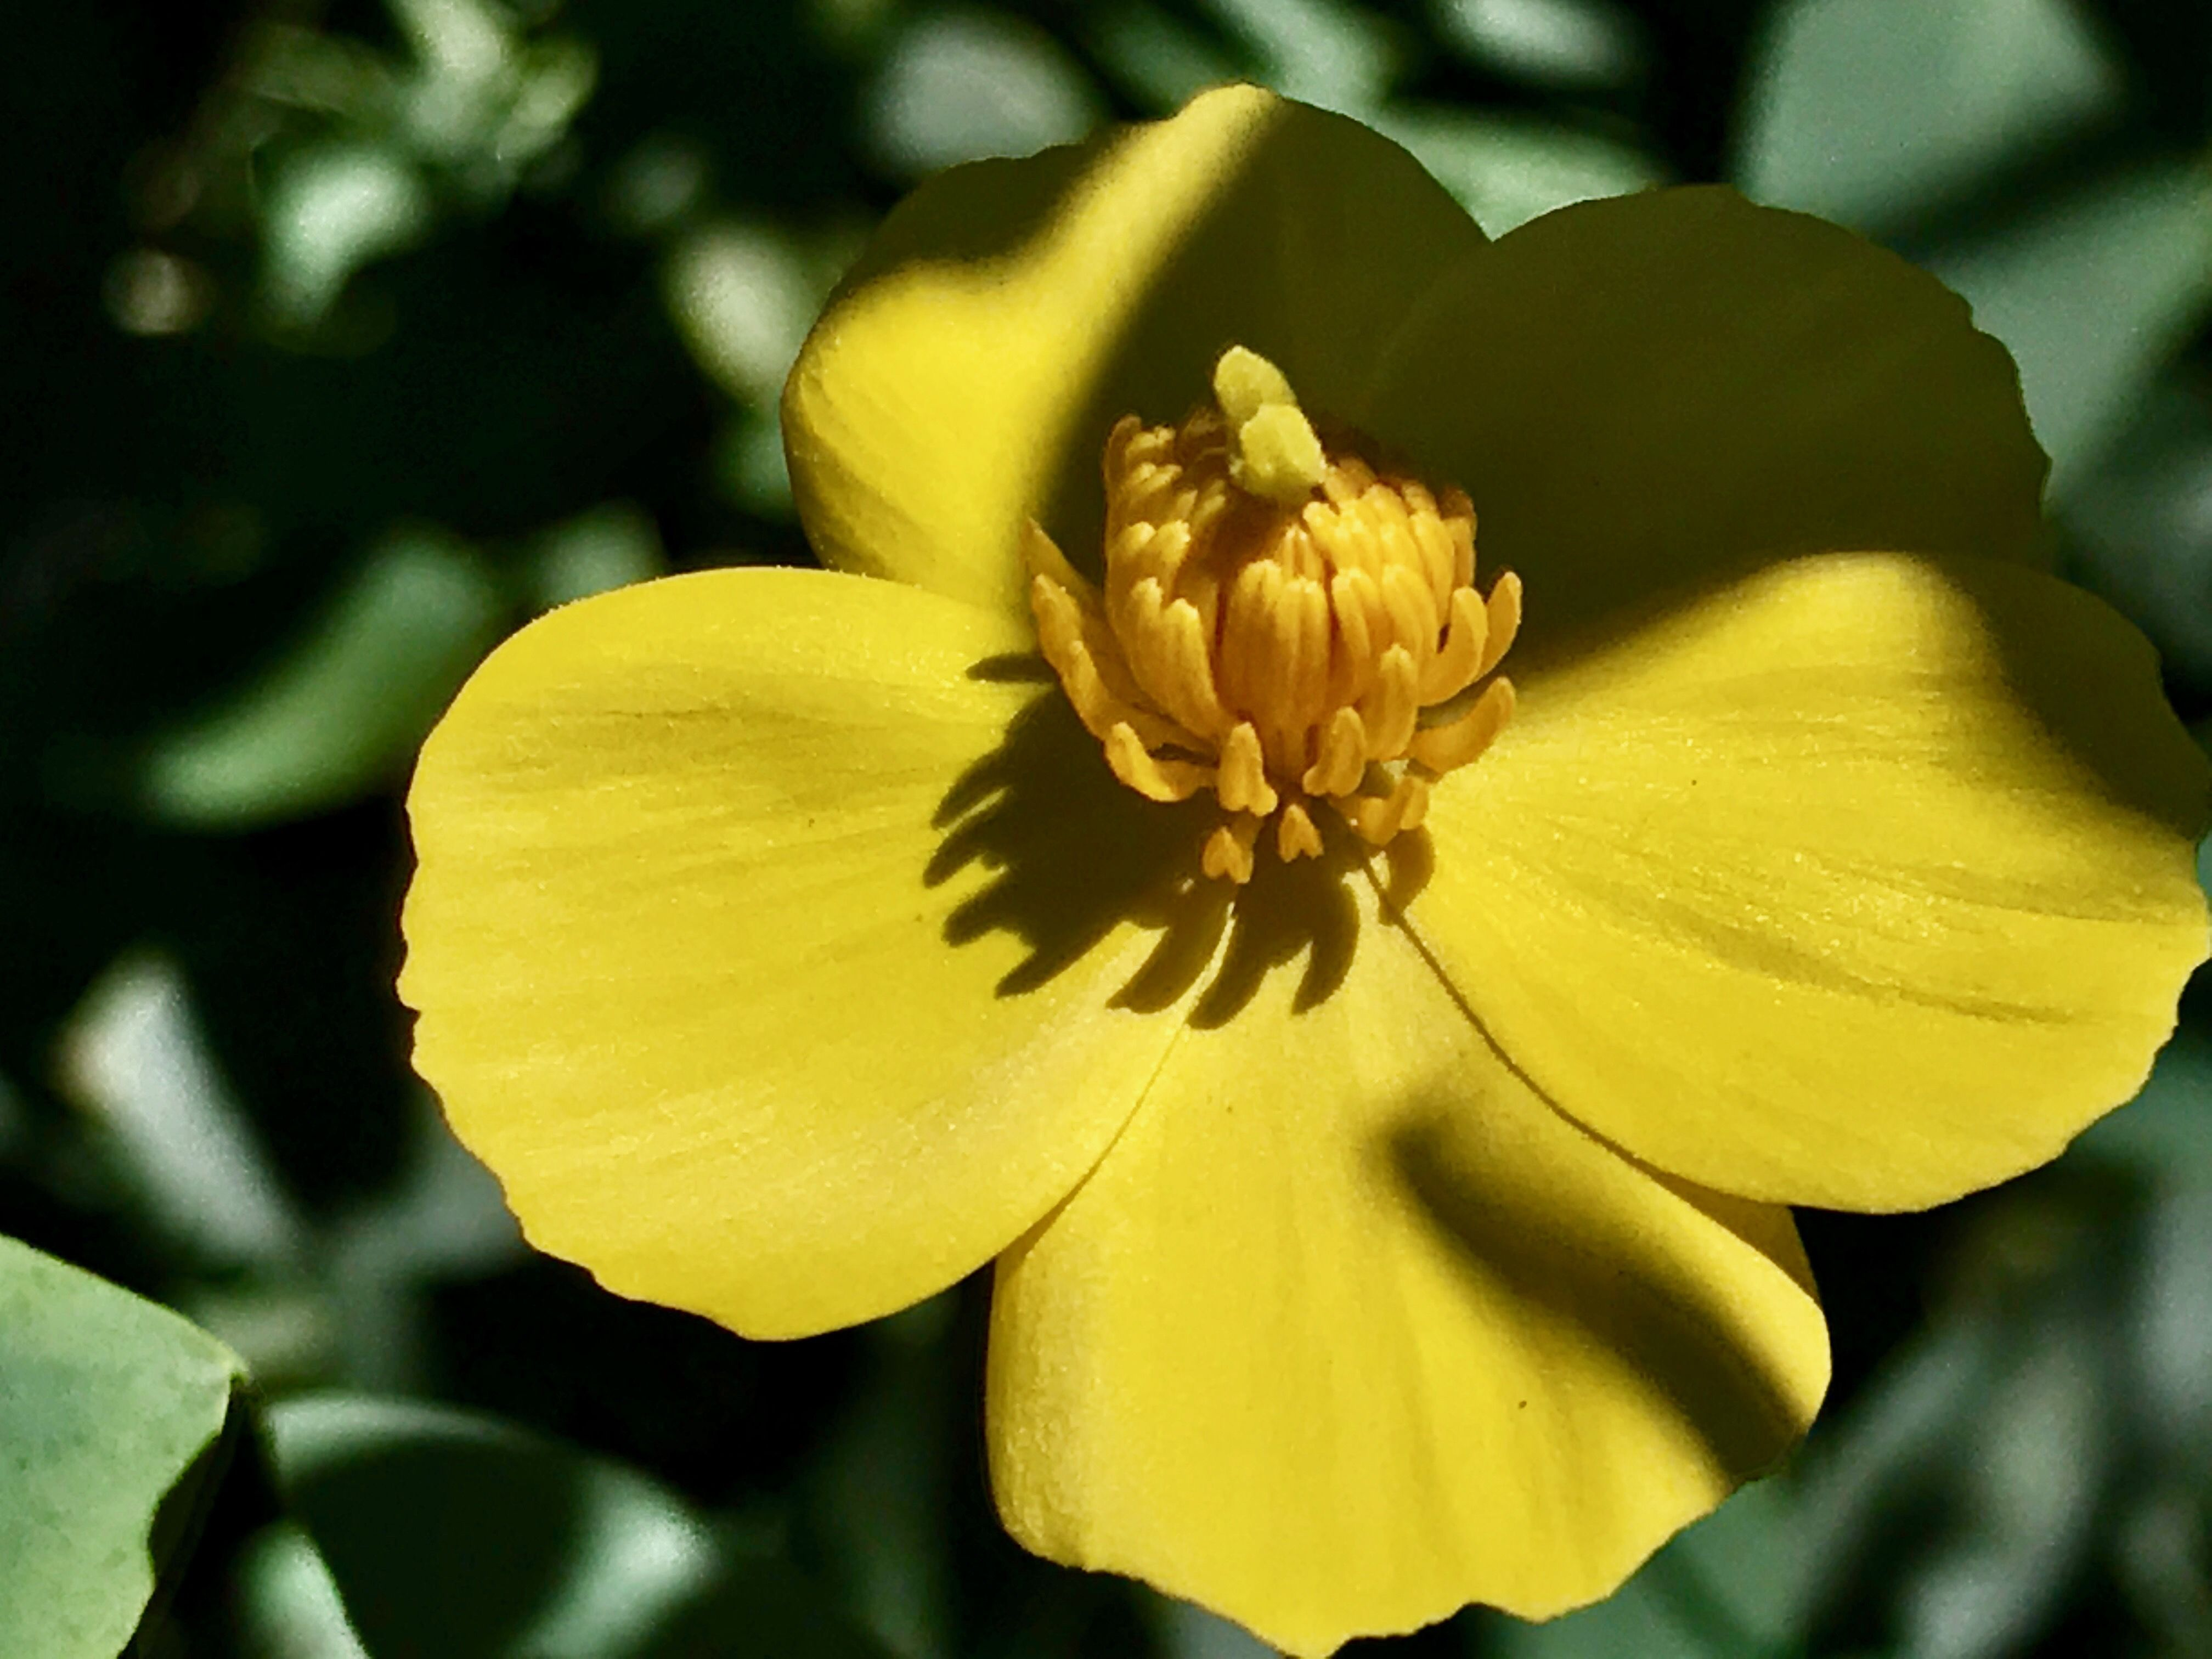 Buttercups Include A Wide Variety Of Flower Types Grouped By A System In The Genus Ranunculus Among Them Are The Meadow Types Of Flowers The Meadows Flowers